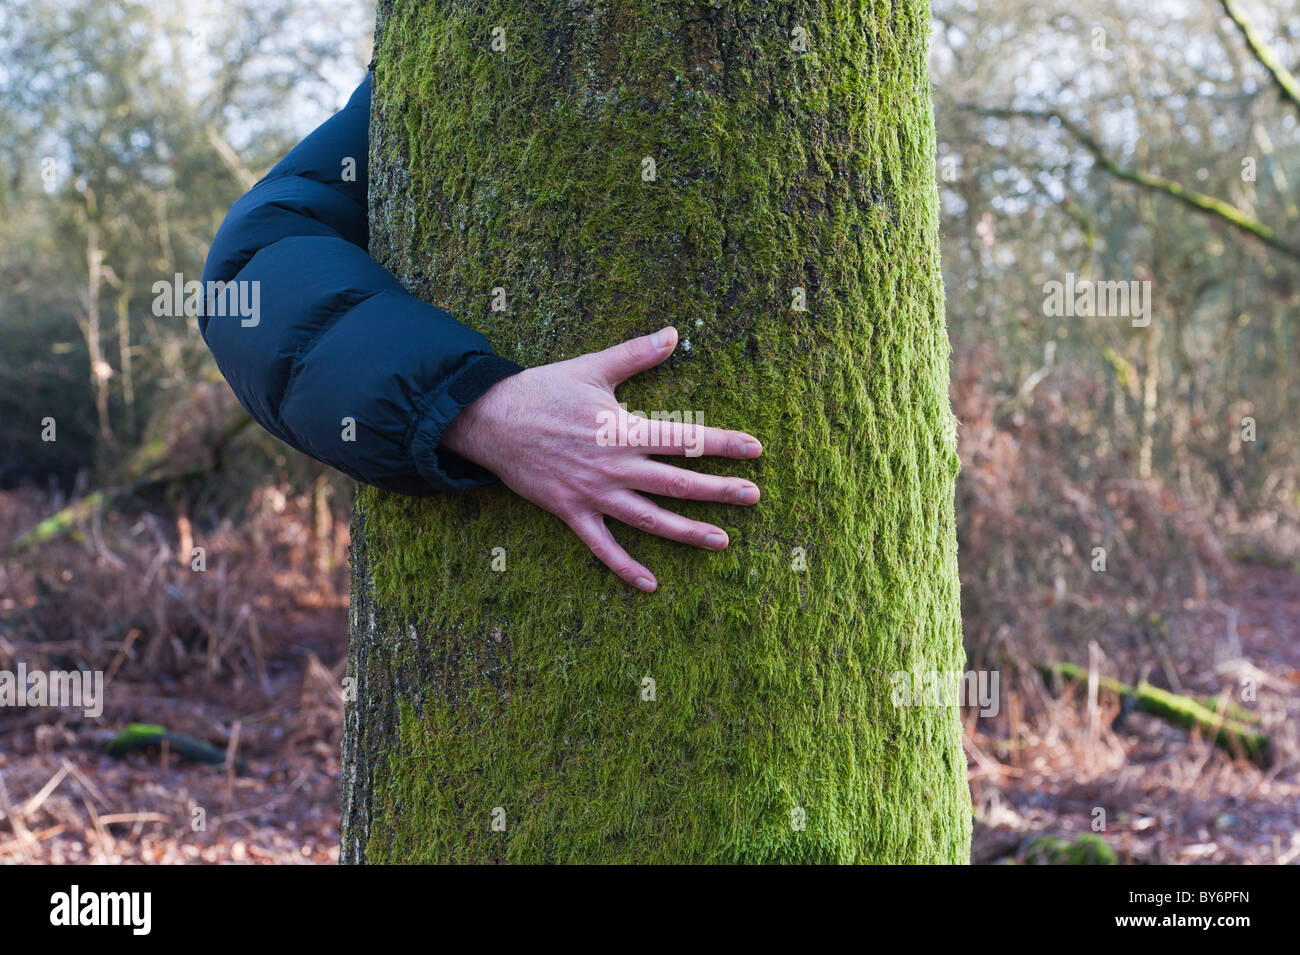 Man hidden behind a tree in a wood with one arm visible - Stock Image